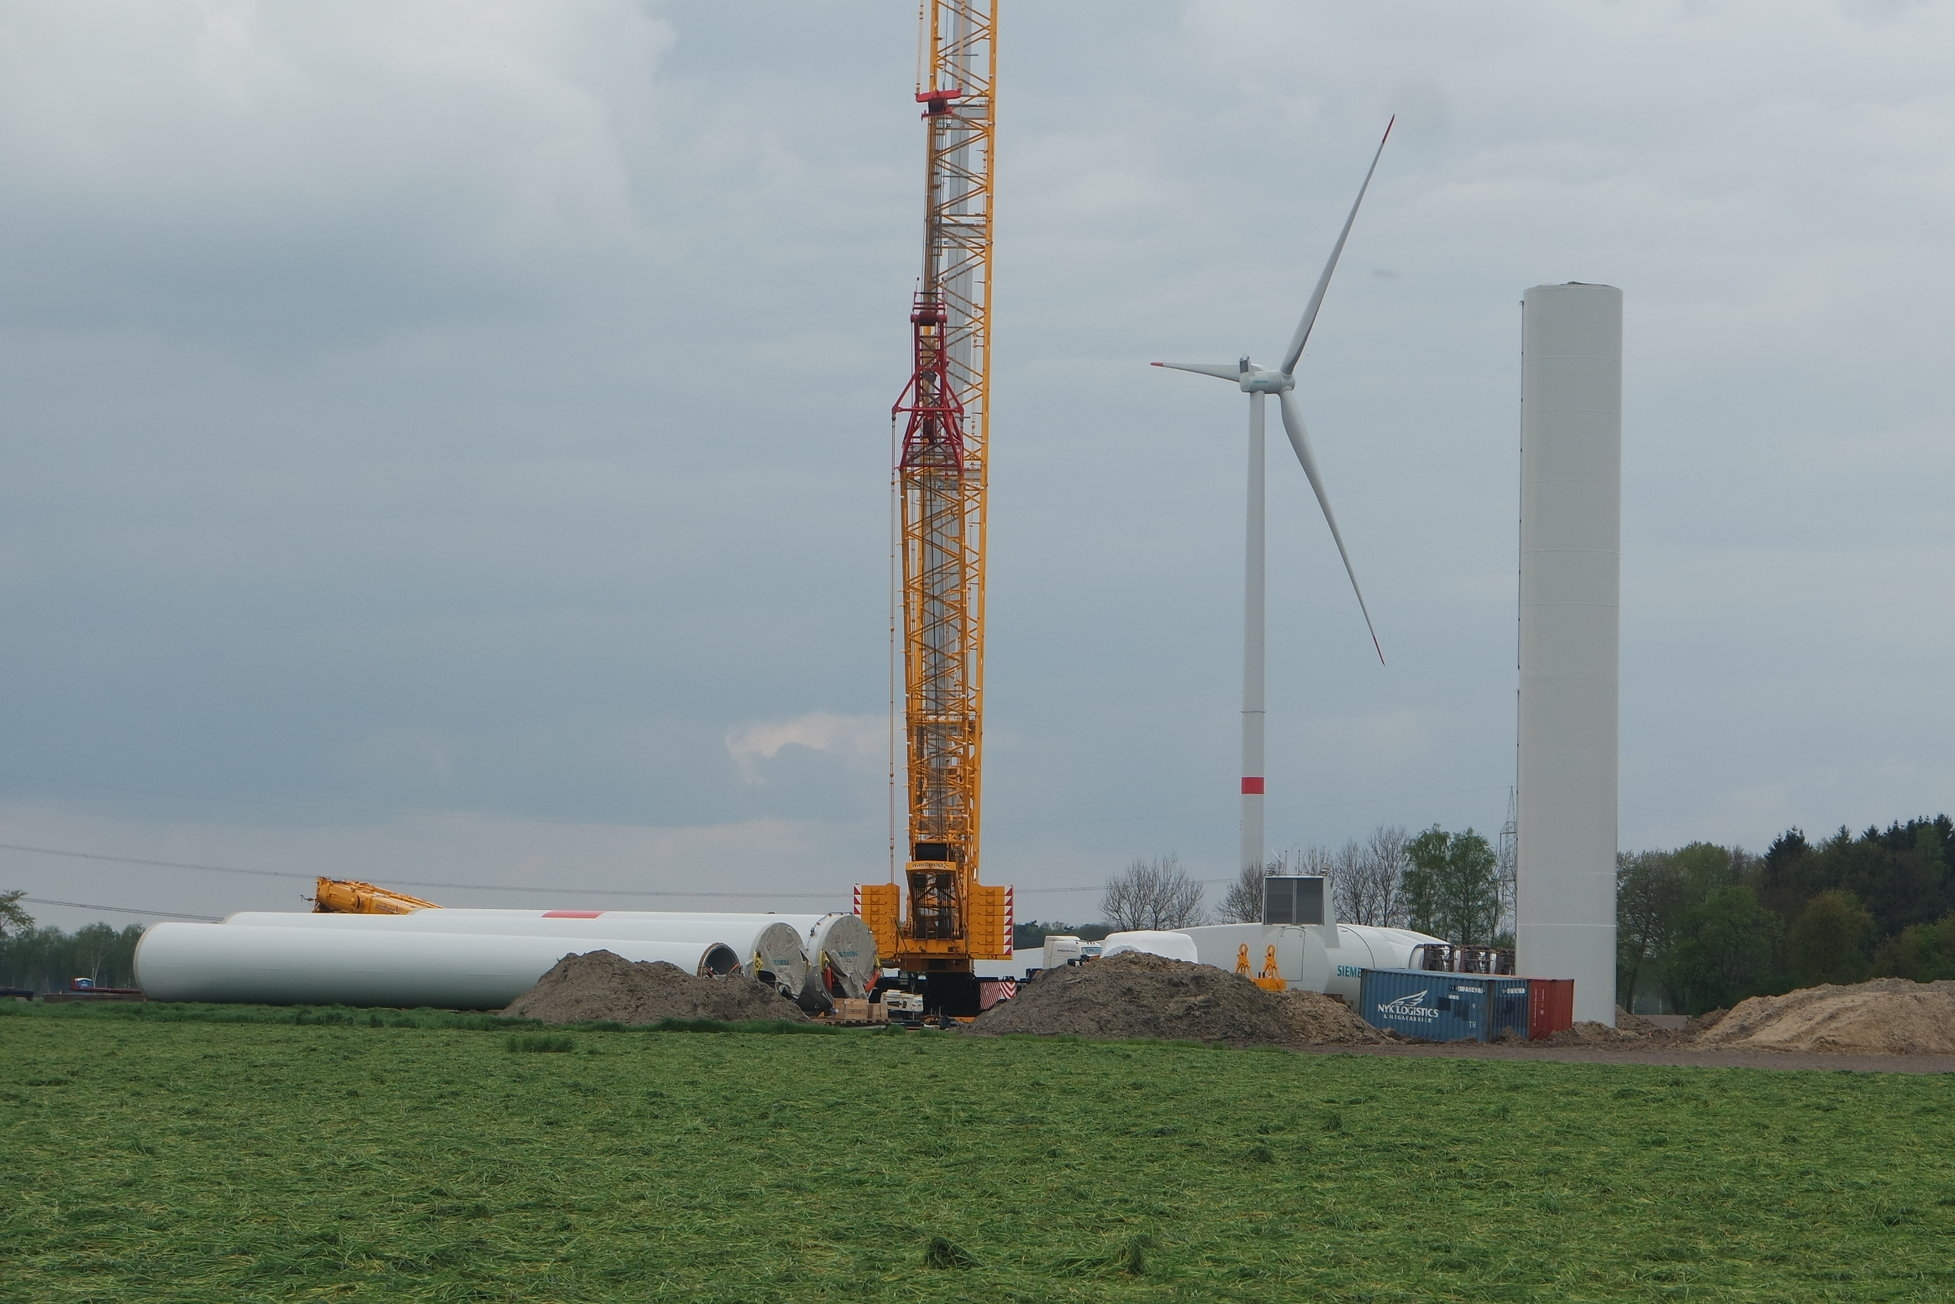 Community wind power projects ensure an inclusive energy transition with benefits for rural areas.